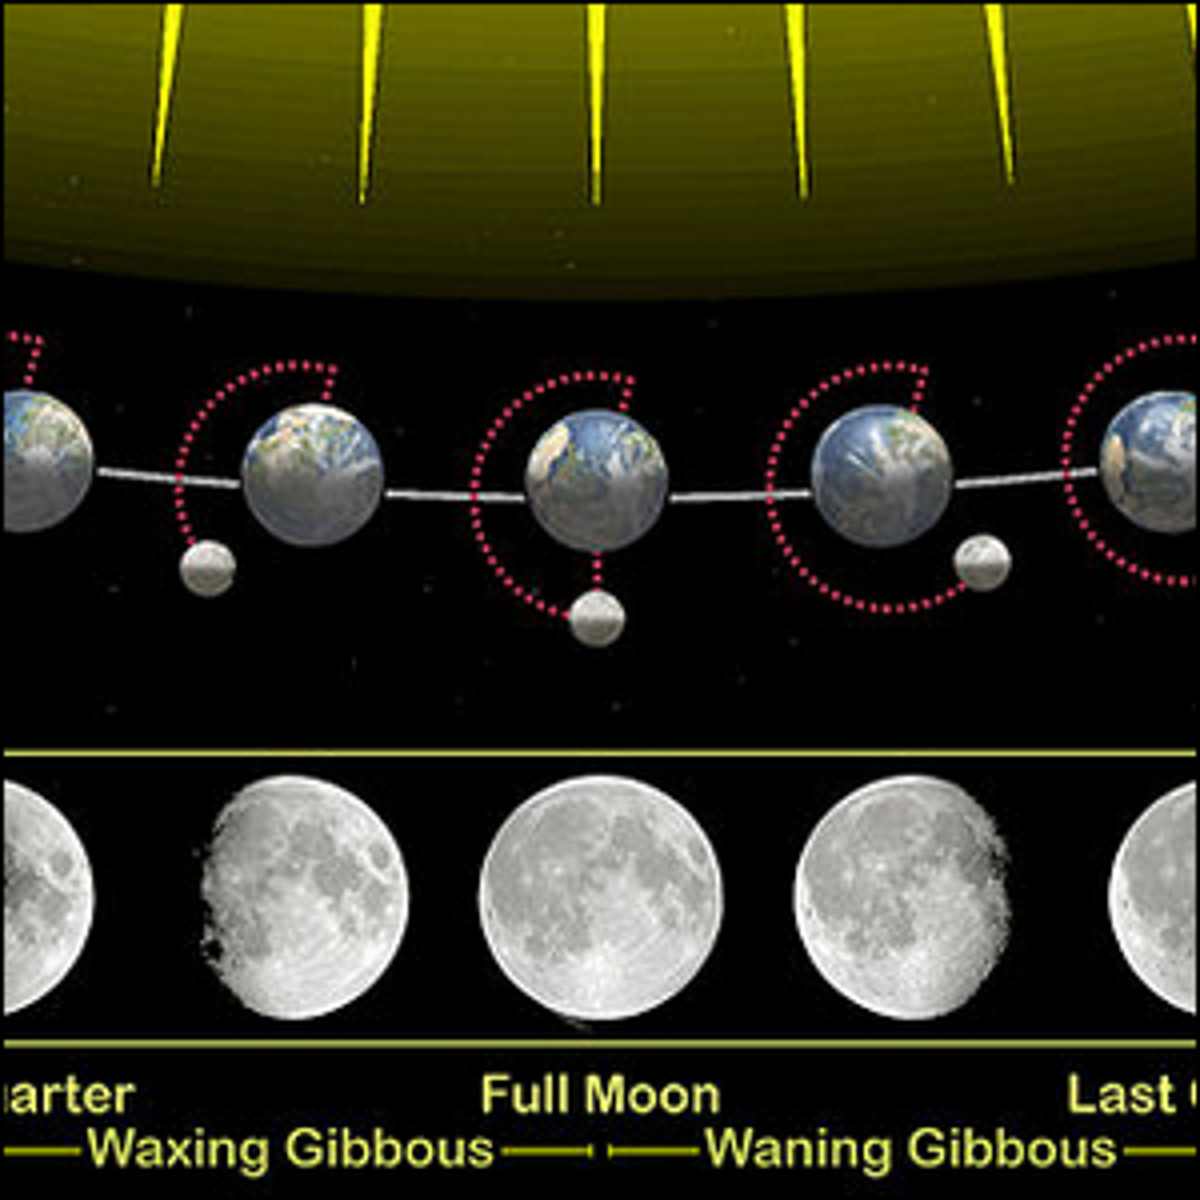 A moon cycle chart depicting the phases of the Moon.